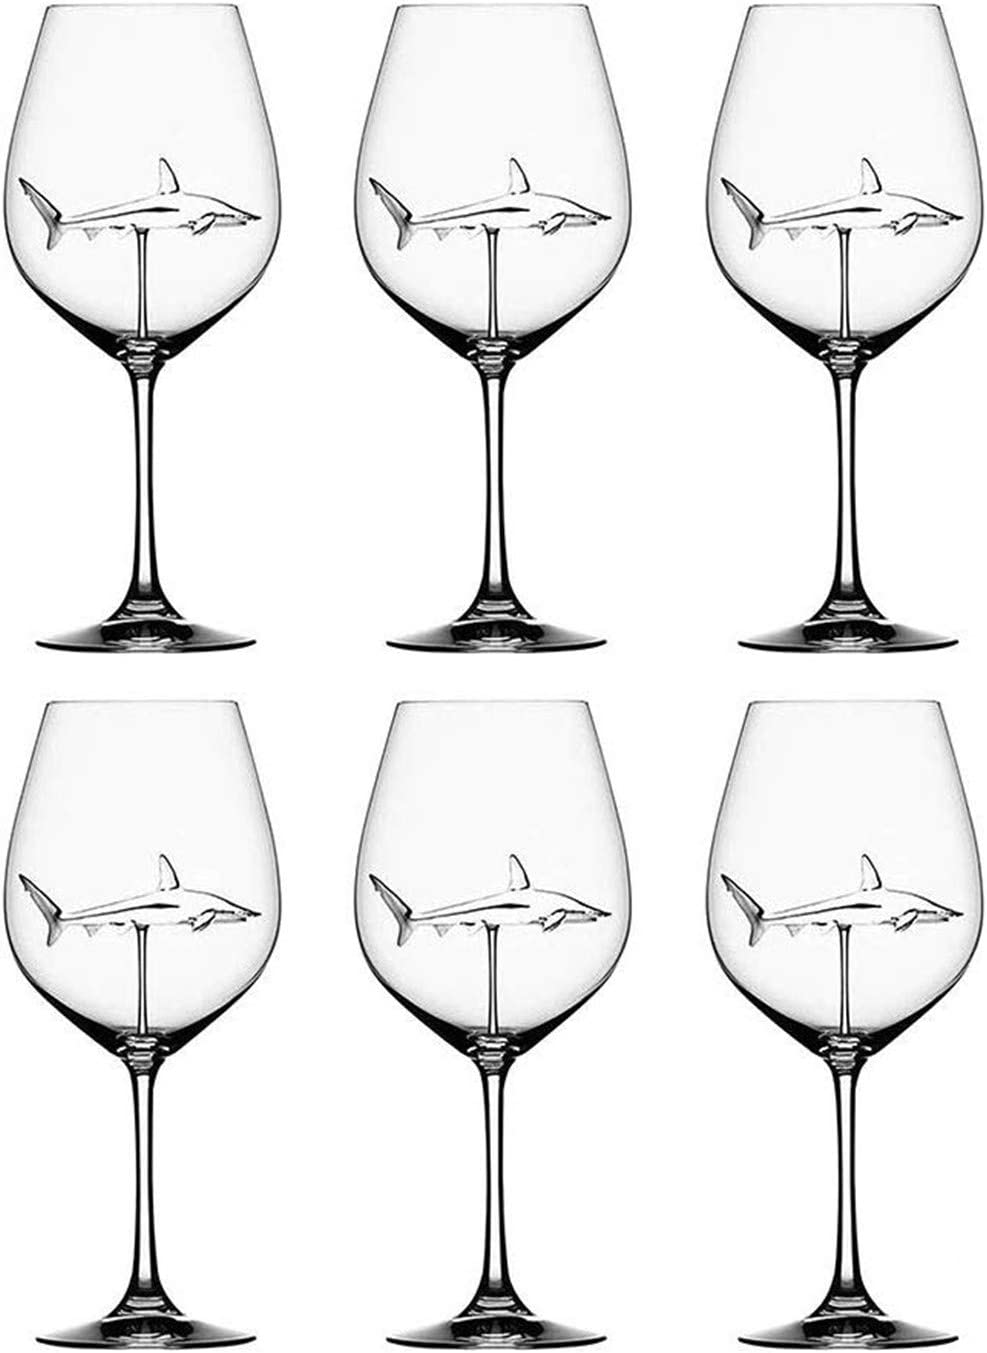 SXFSE Red Wine Oklahoma Nippon regular agency City Mall Glasses Adults Shark Creat for